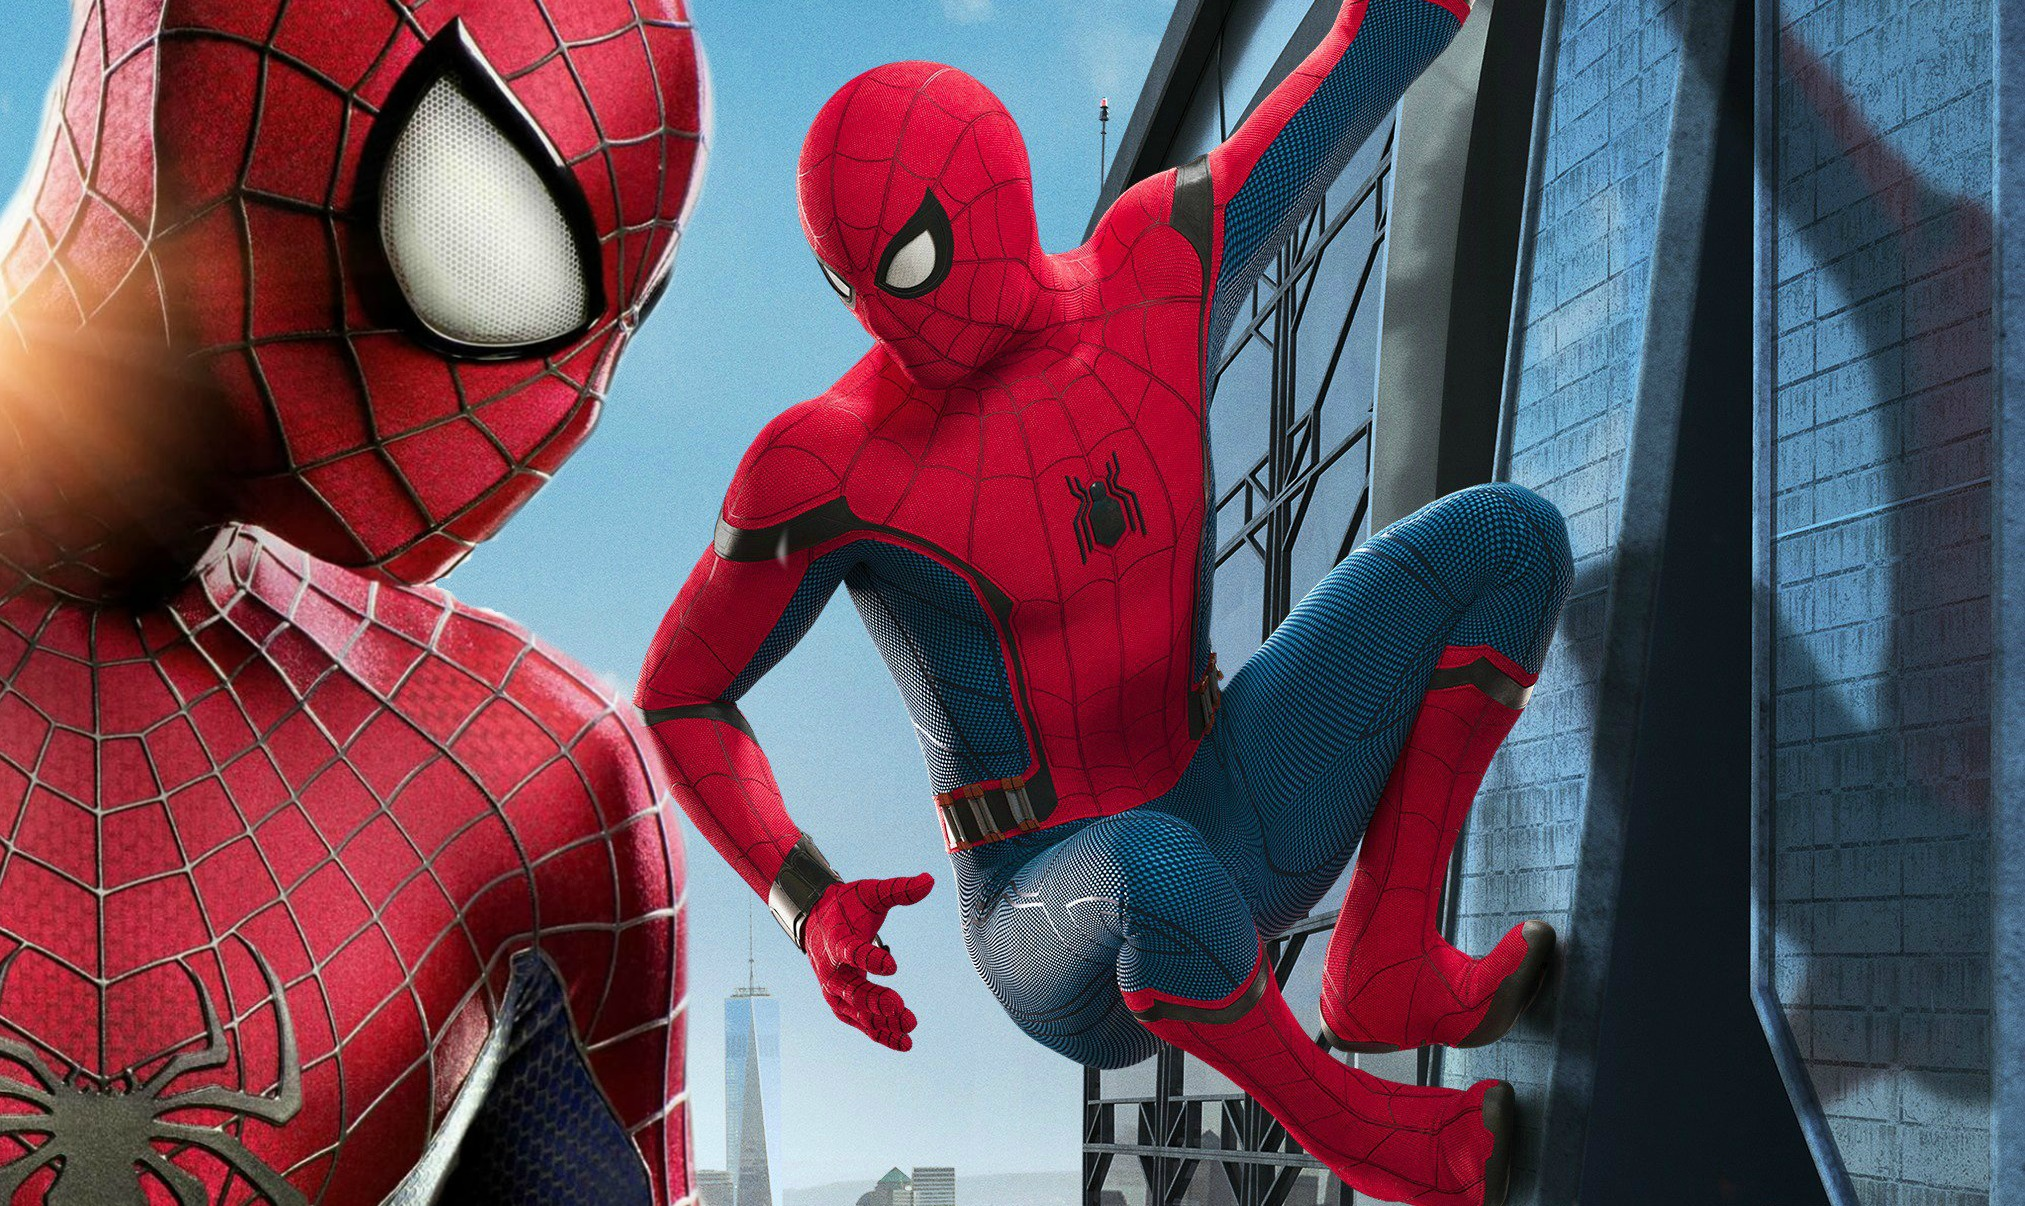 Spider-Man: Homecoming Director Got Advice From The Amazing Spider-Man's Marc Webb